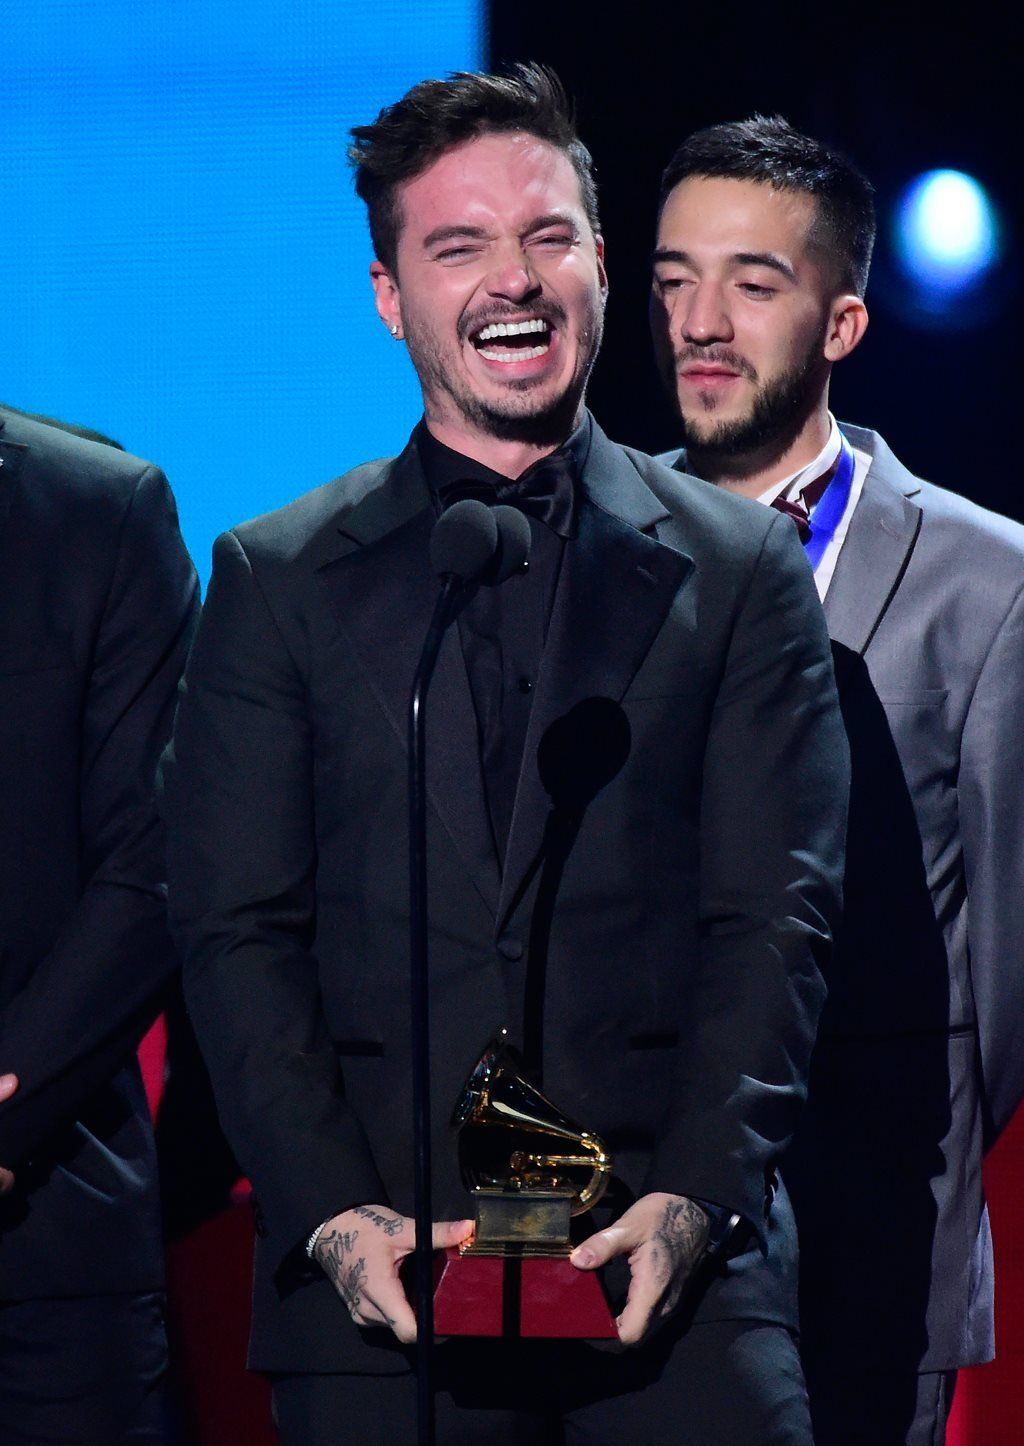 J Balvin at the 2016 Latin Grammys